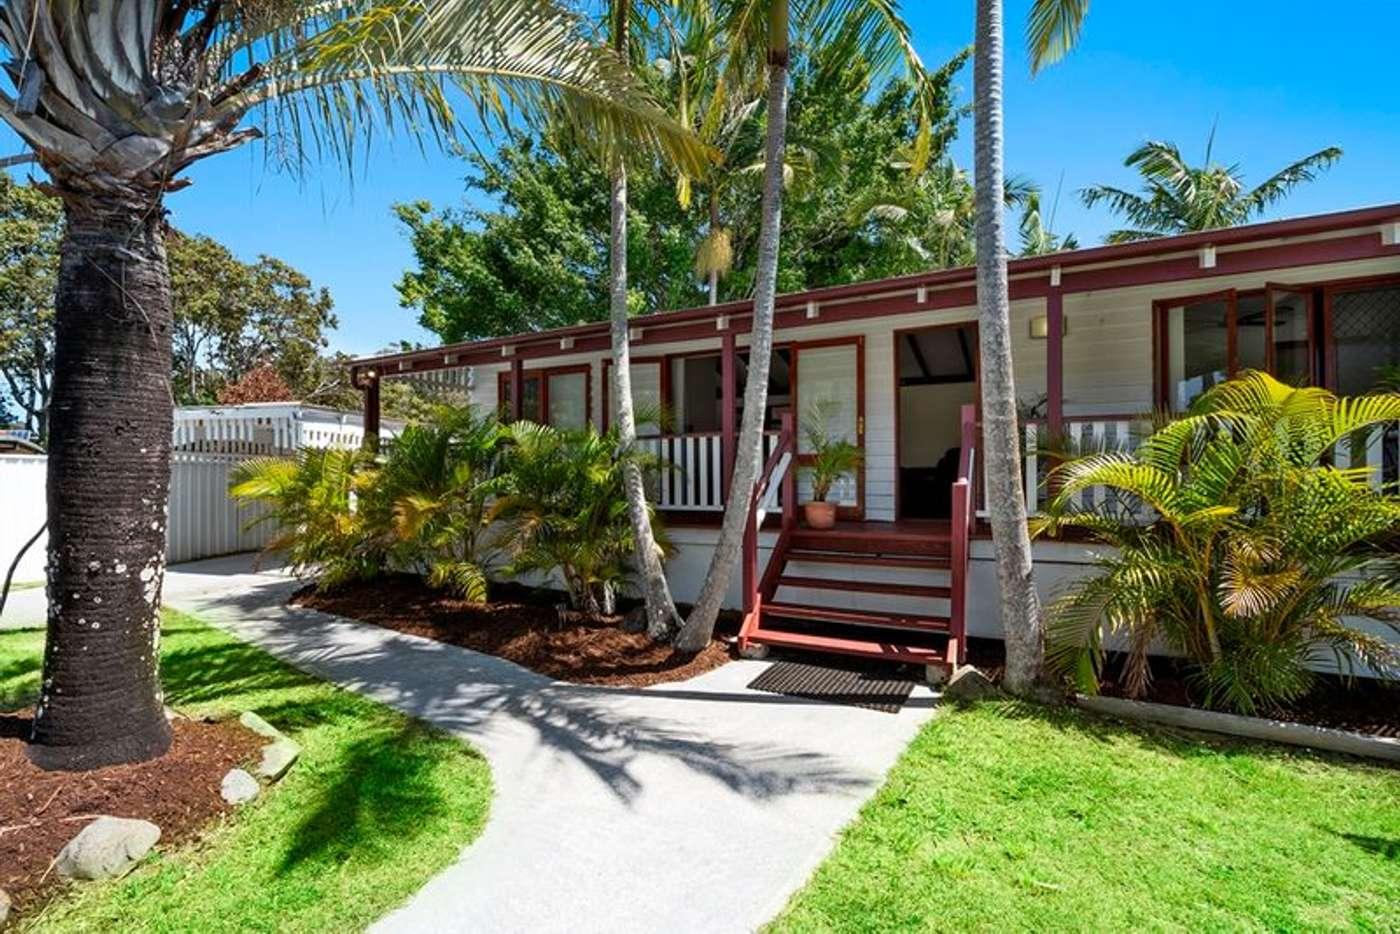 Main view of Homely house listing, 39 Warana Avenue, Southport QLD 4215